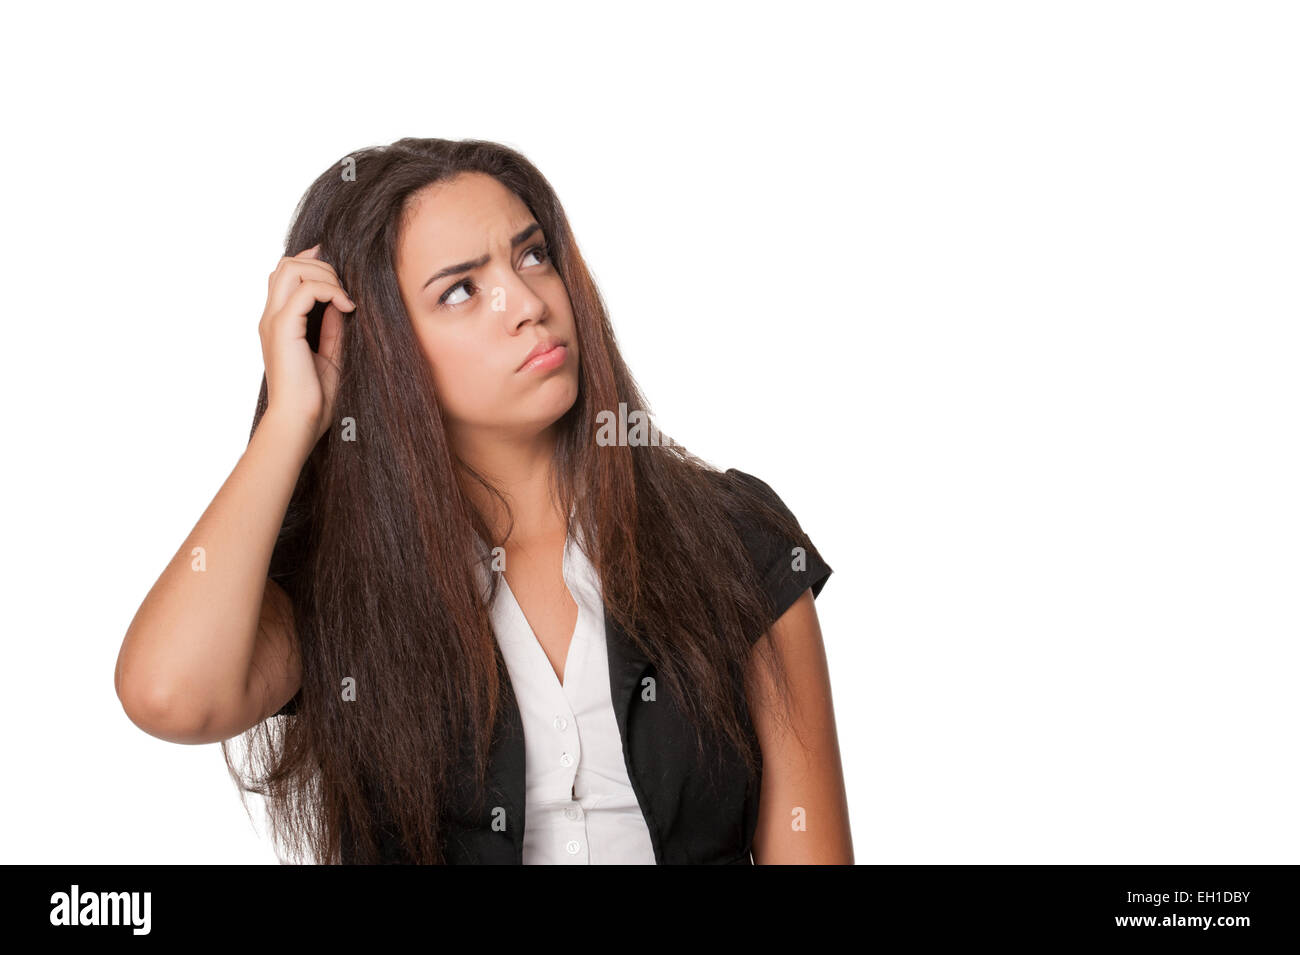 Portrait of puzzled young woman, isolated on white - Stock Image